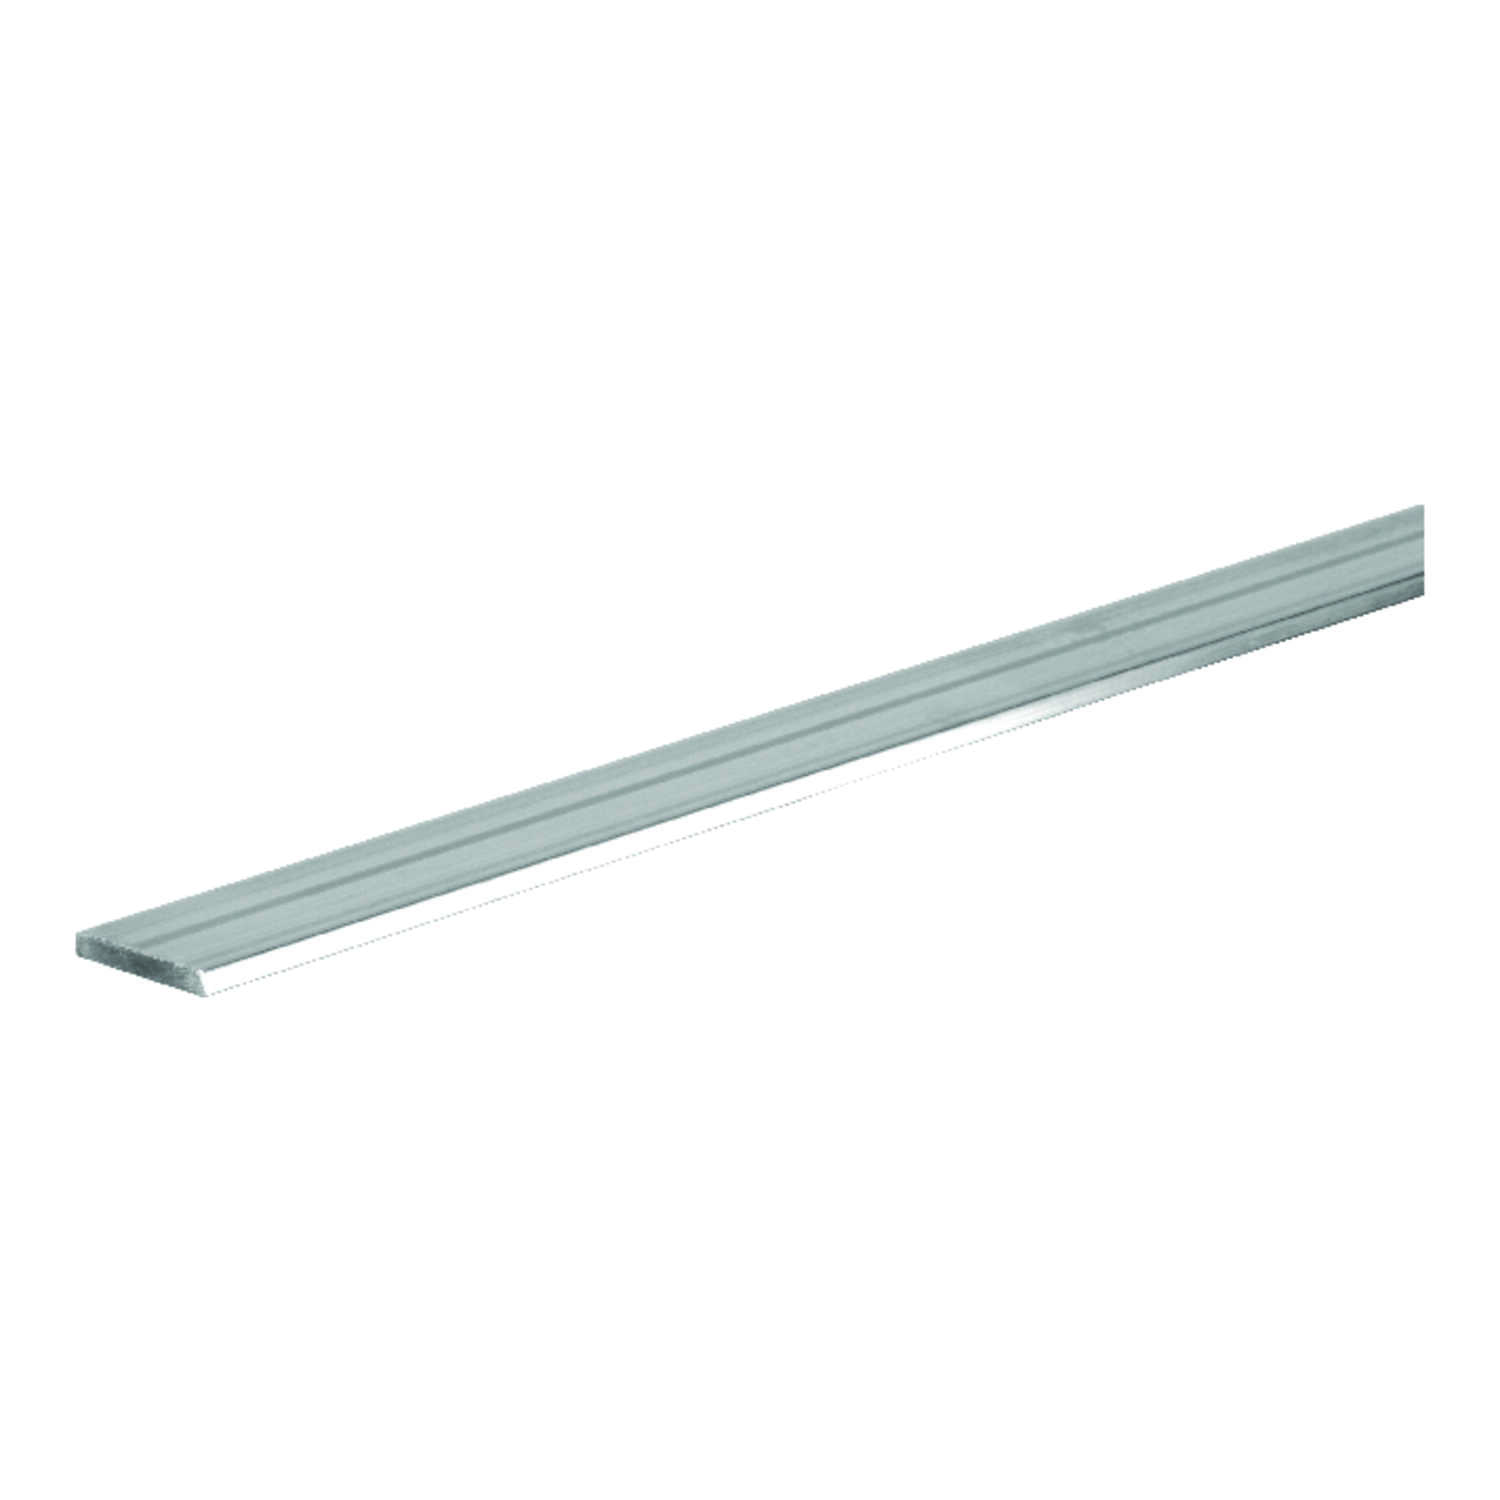 Boltmaster  0.125 in.  x 1.25 in. W x 3 ft. L Weldable Aluminum Flat Bar  5 pk